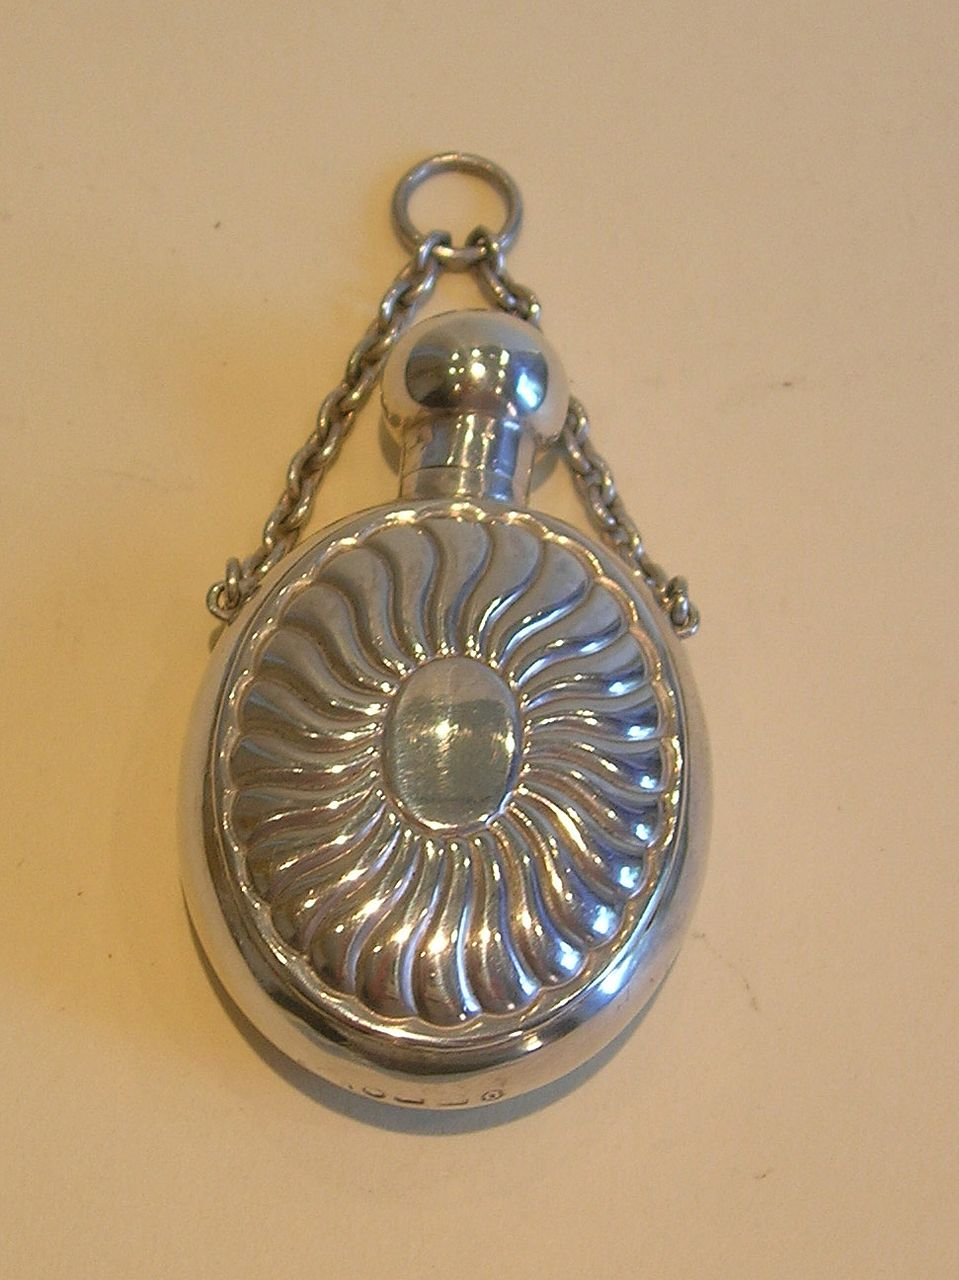 Elegant Antique English Sterling Silver Chatellaine Perfume or Scent Bottle